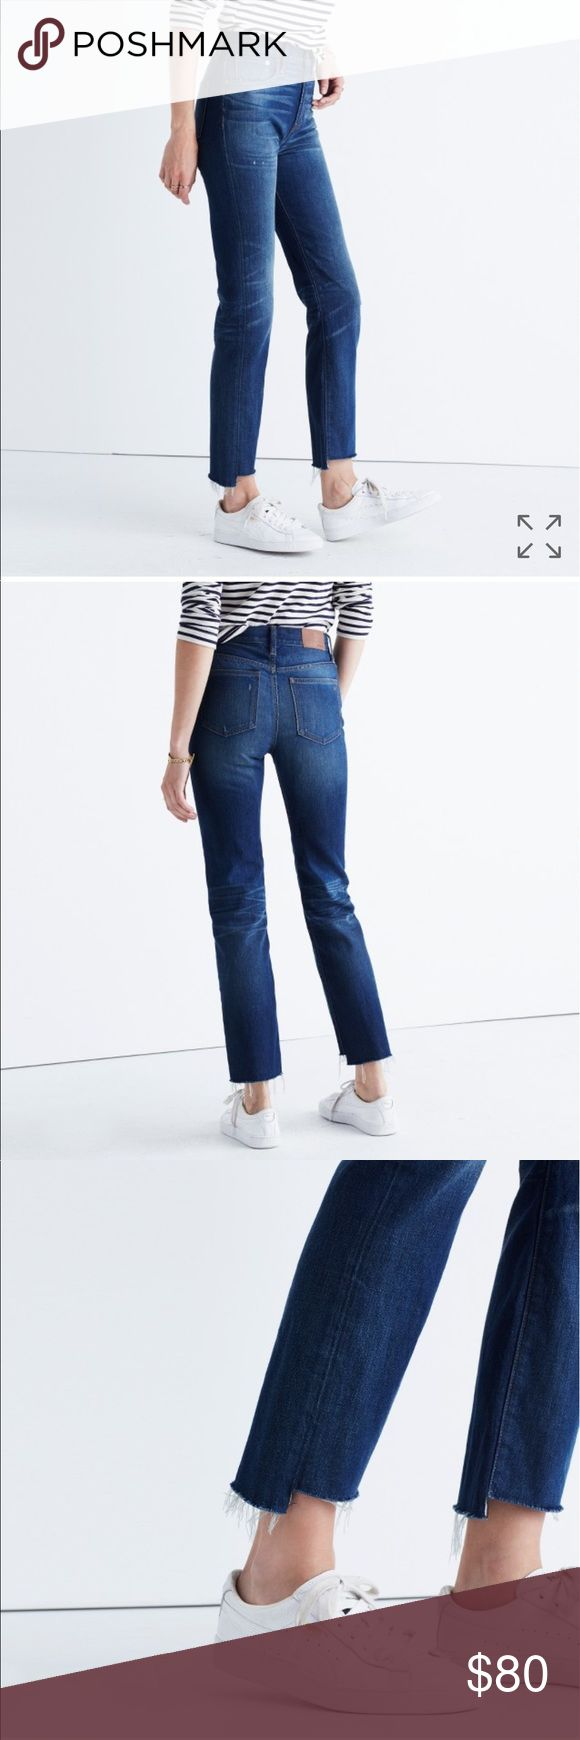 """Madewell The Perfect Vintage Step Hem Jeans Size 26, Regina High Waisted Wash.                            A '90s-chic high rise and frayed step hems define vintage-inspired jeans cut with a cool relaxed fit. The indigo wash is perfectly whiskered and faded, while beautiful golden topstitching completes the lived-in look. 26 1/2"""" inseam; 15"""" leg opening; 12"""" front rise; 15"""" back rise (size 29) Zip fly with button closure Five-pocket style 100% cotton Machine wash cold, tumble dry low By…"""